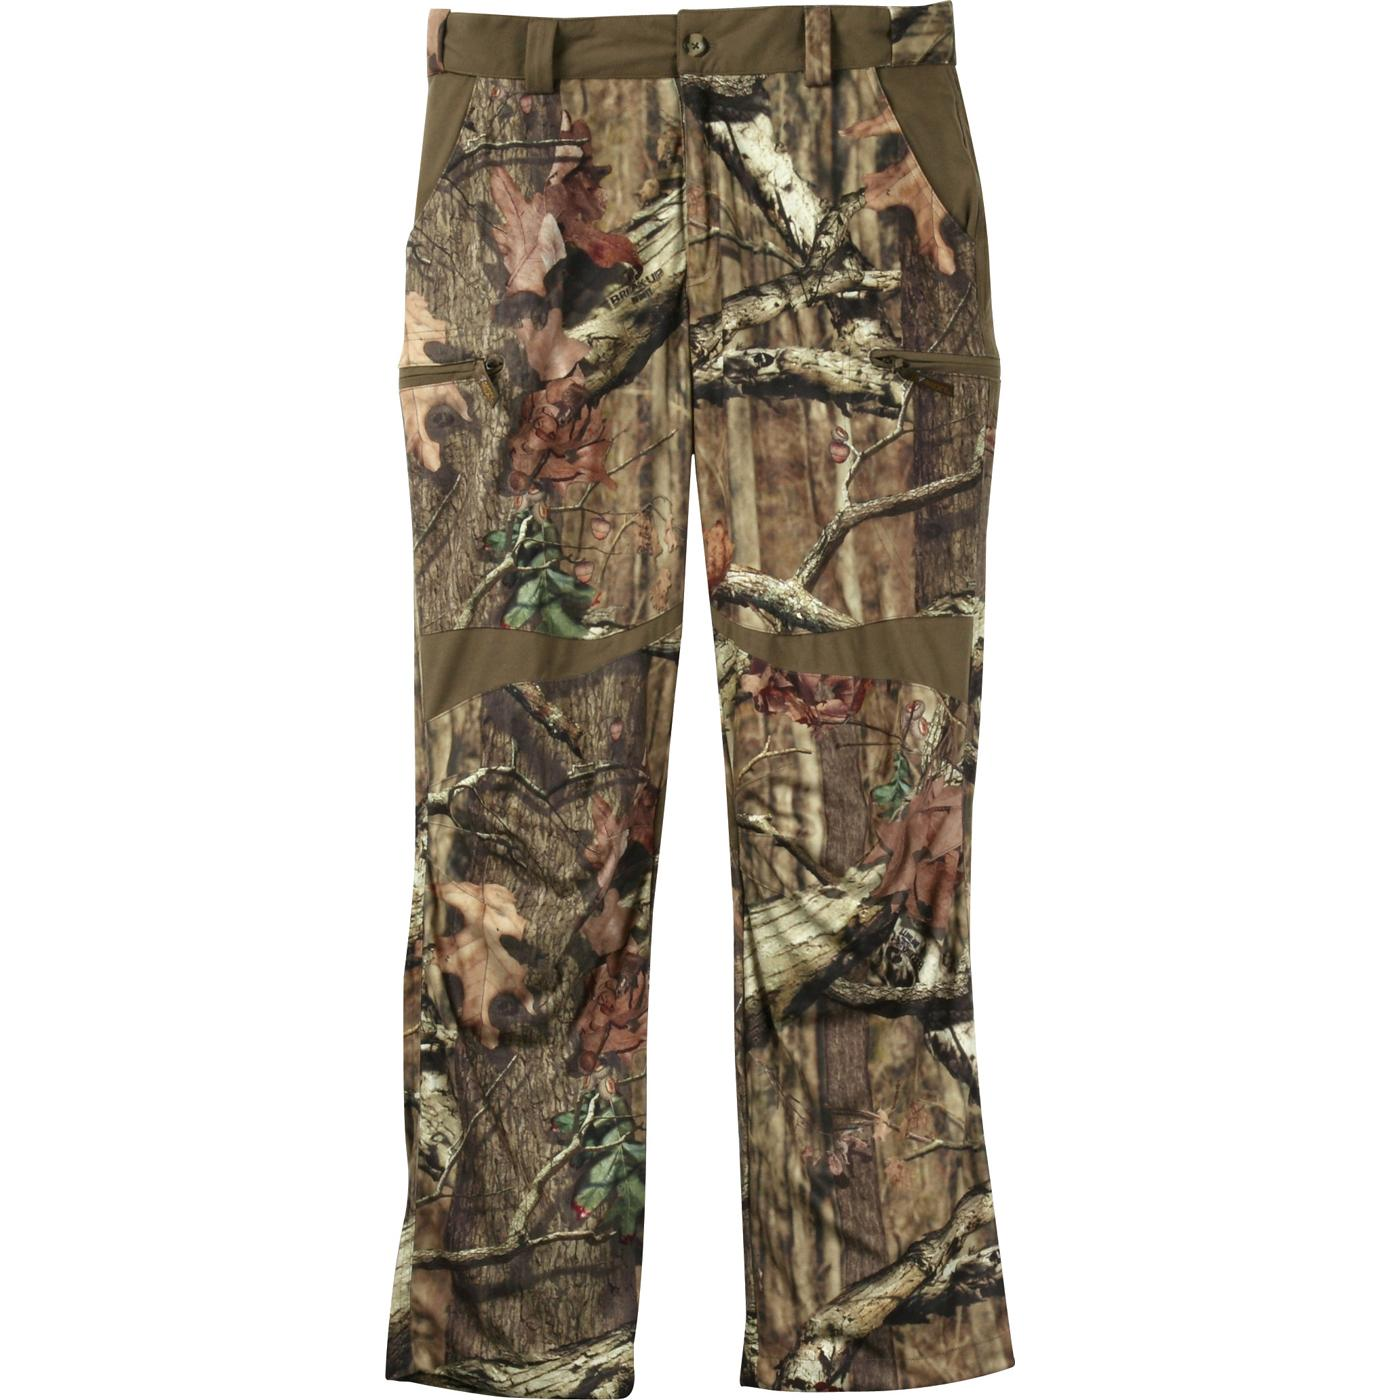 Rocky SilentHunter: Women's Camo Cargo Pants with Scent IQ